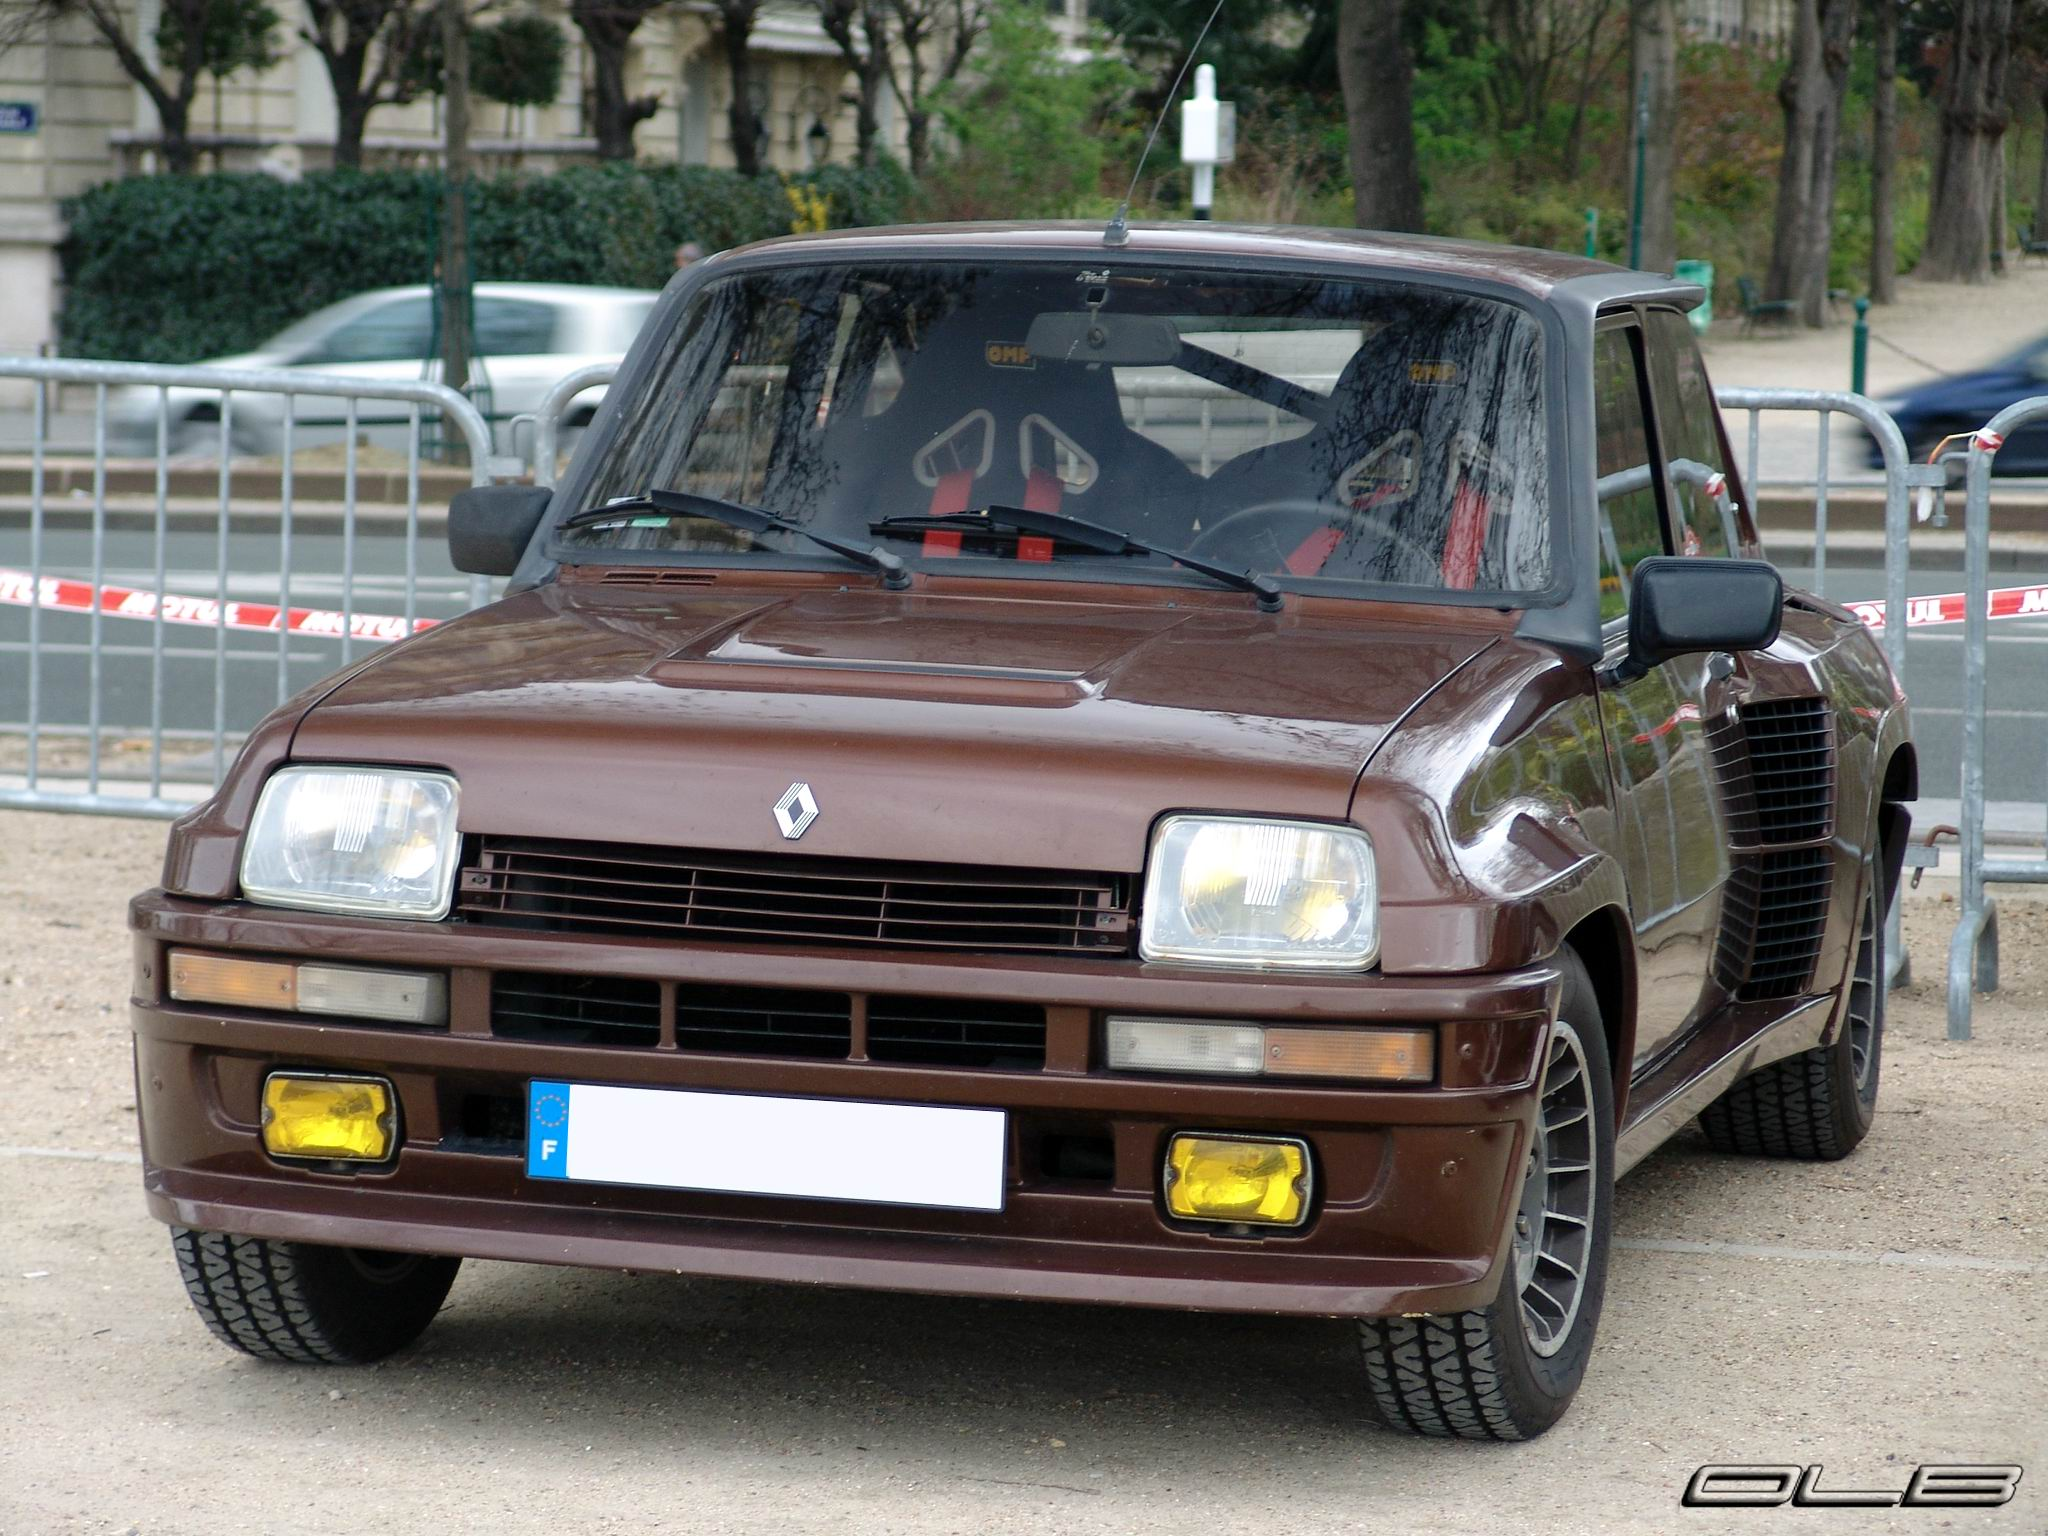 Photo du jour : Renault 5